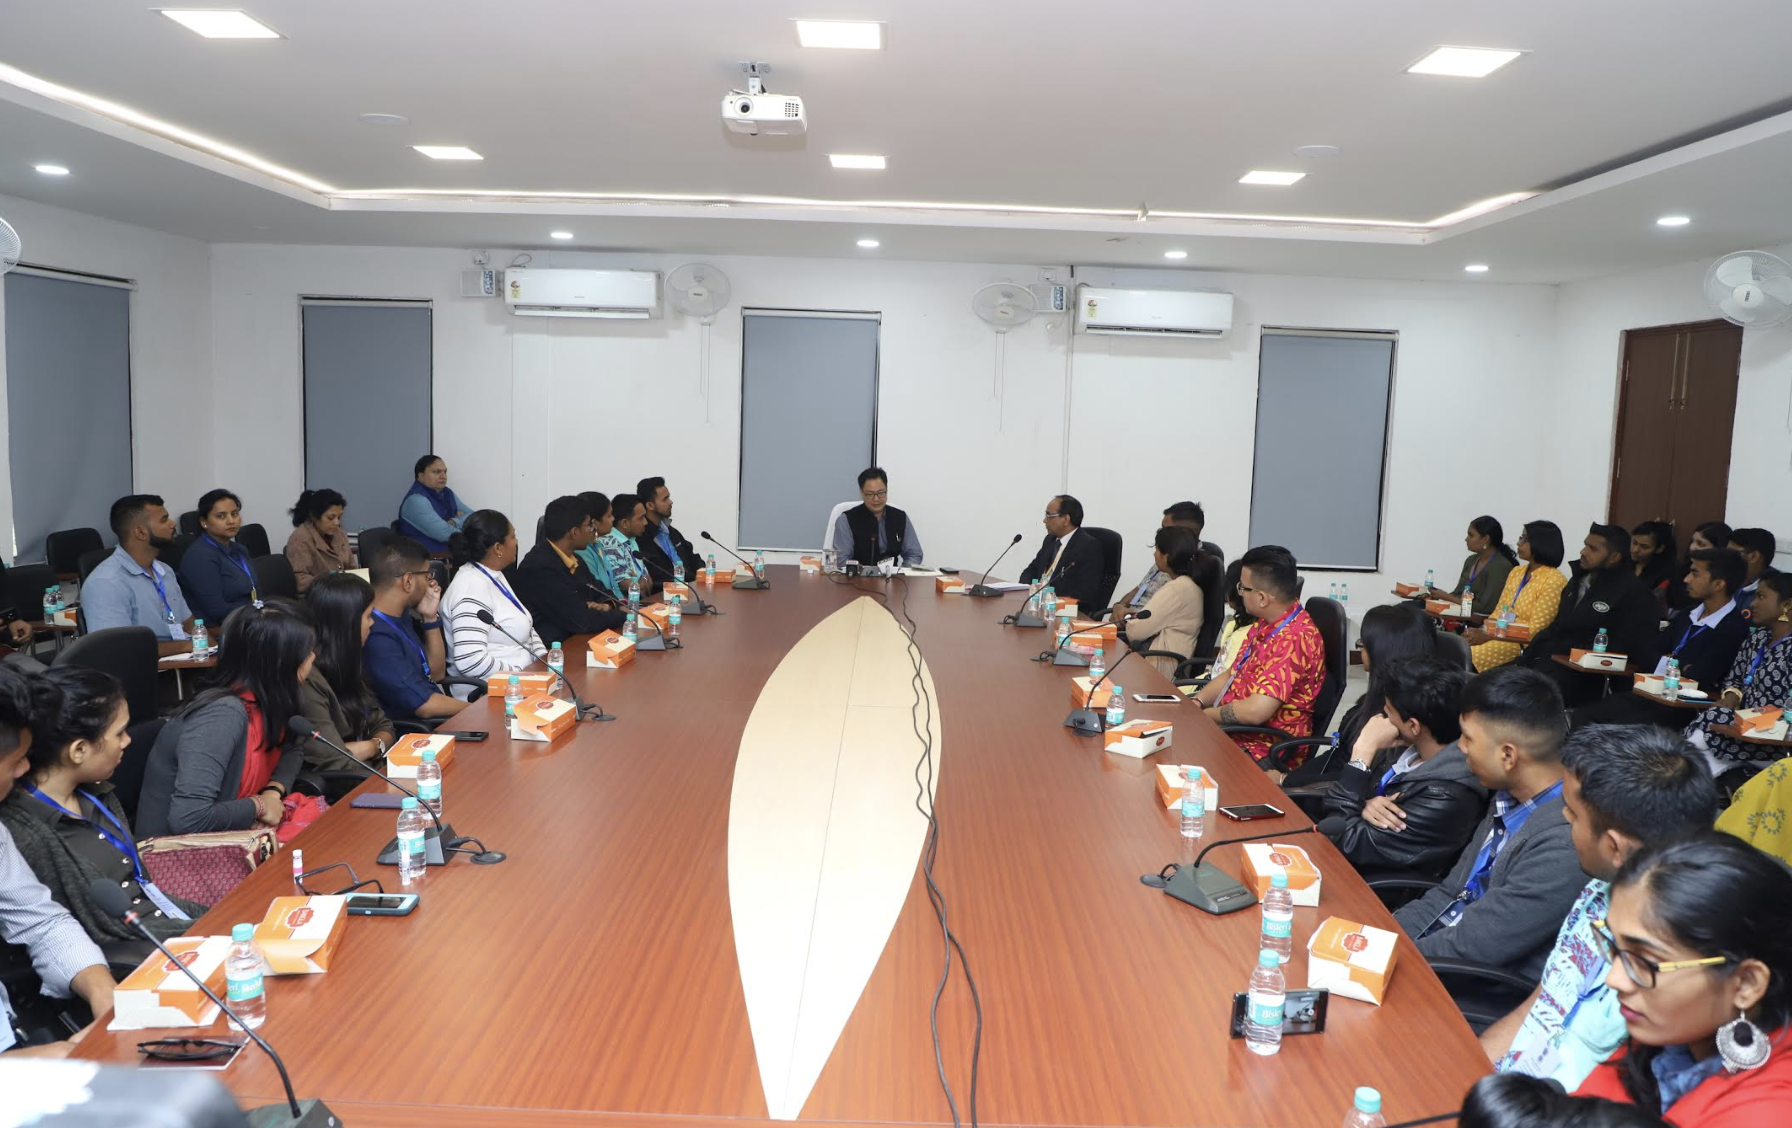 Indian Minister of State for Home Affairs Kiren Rijiju interacting with the participants of Know India Programme from eight countries, being organised by MEA in partnership with Andhra Pradesh Government, in New Delhi on Saturday, December 8, 2018. Photo courtesy: Indian Ministry of Home Affairs